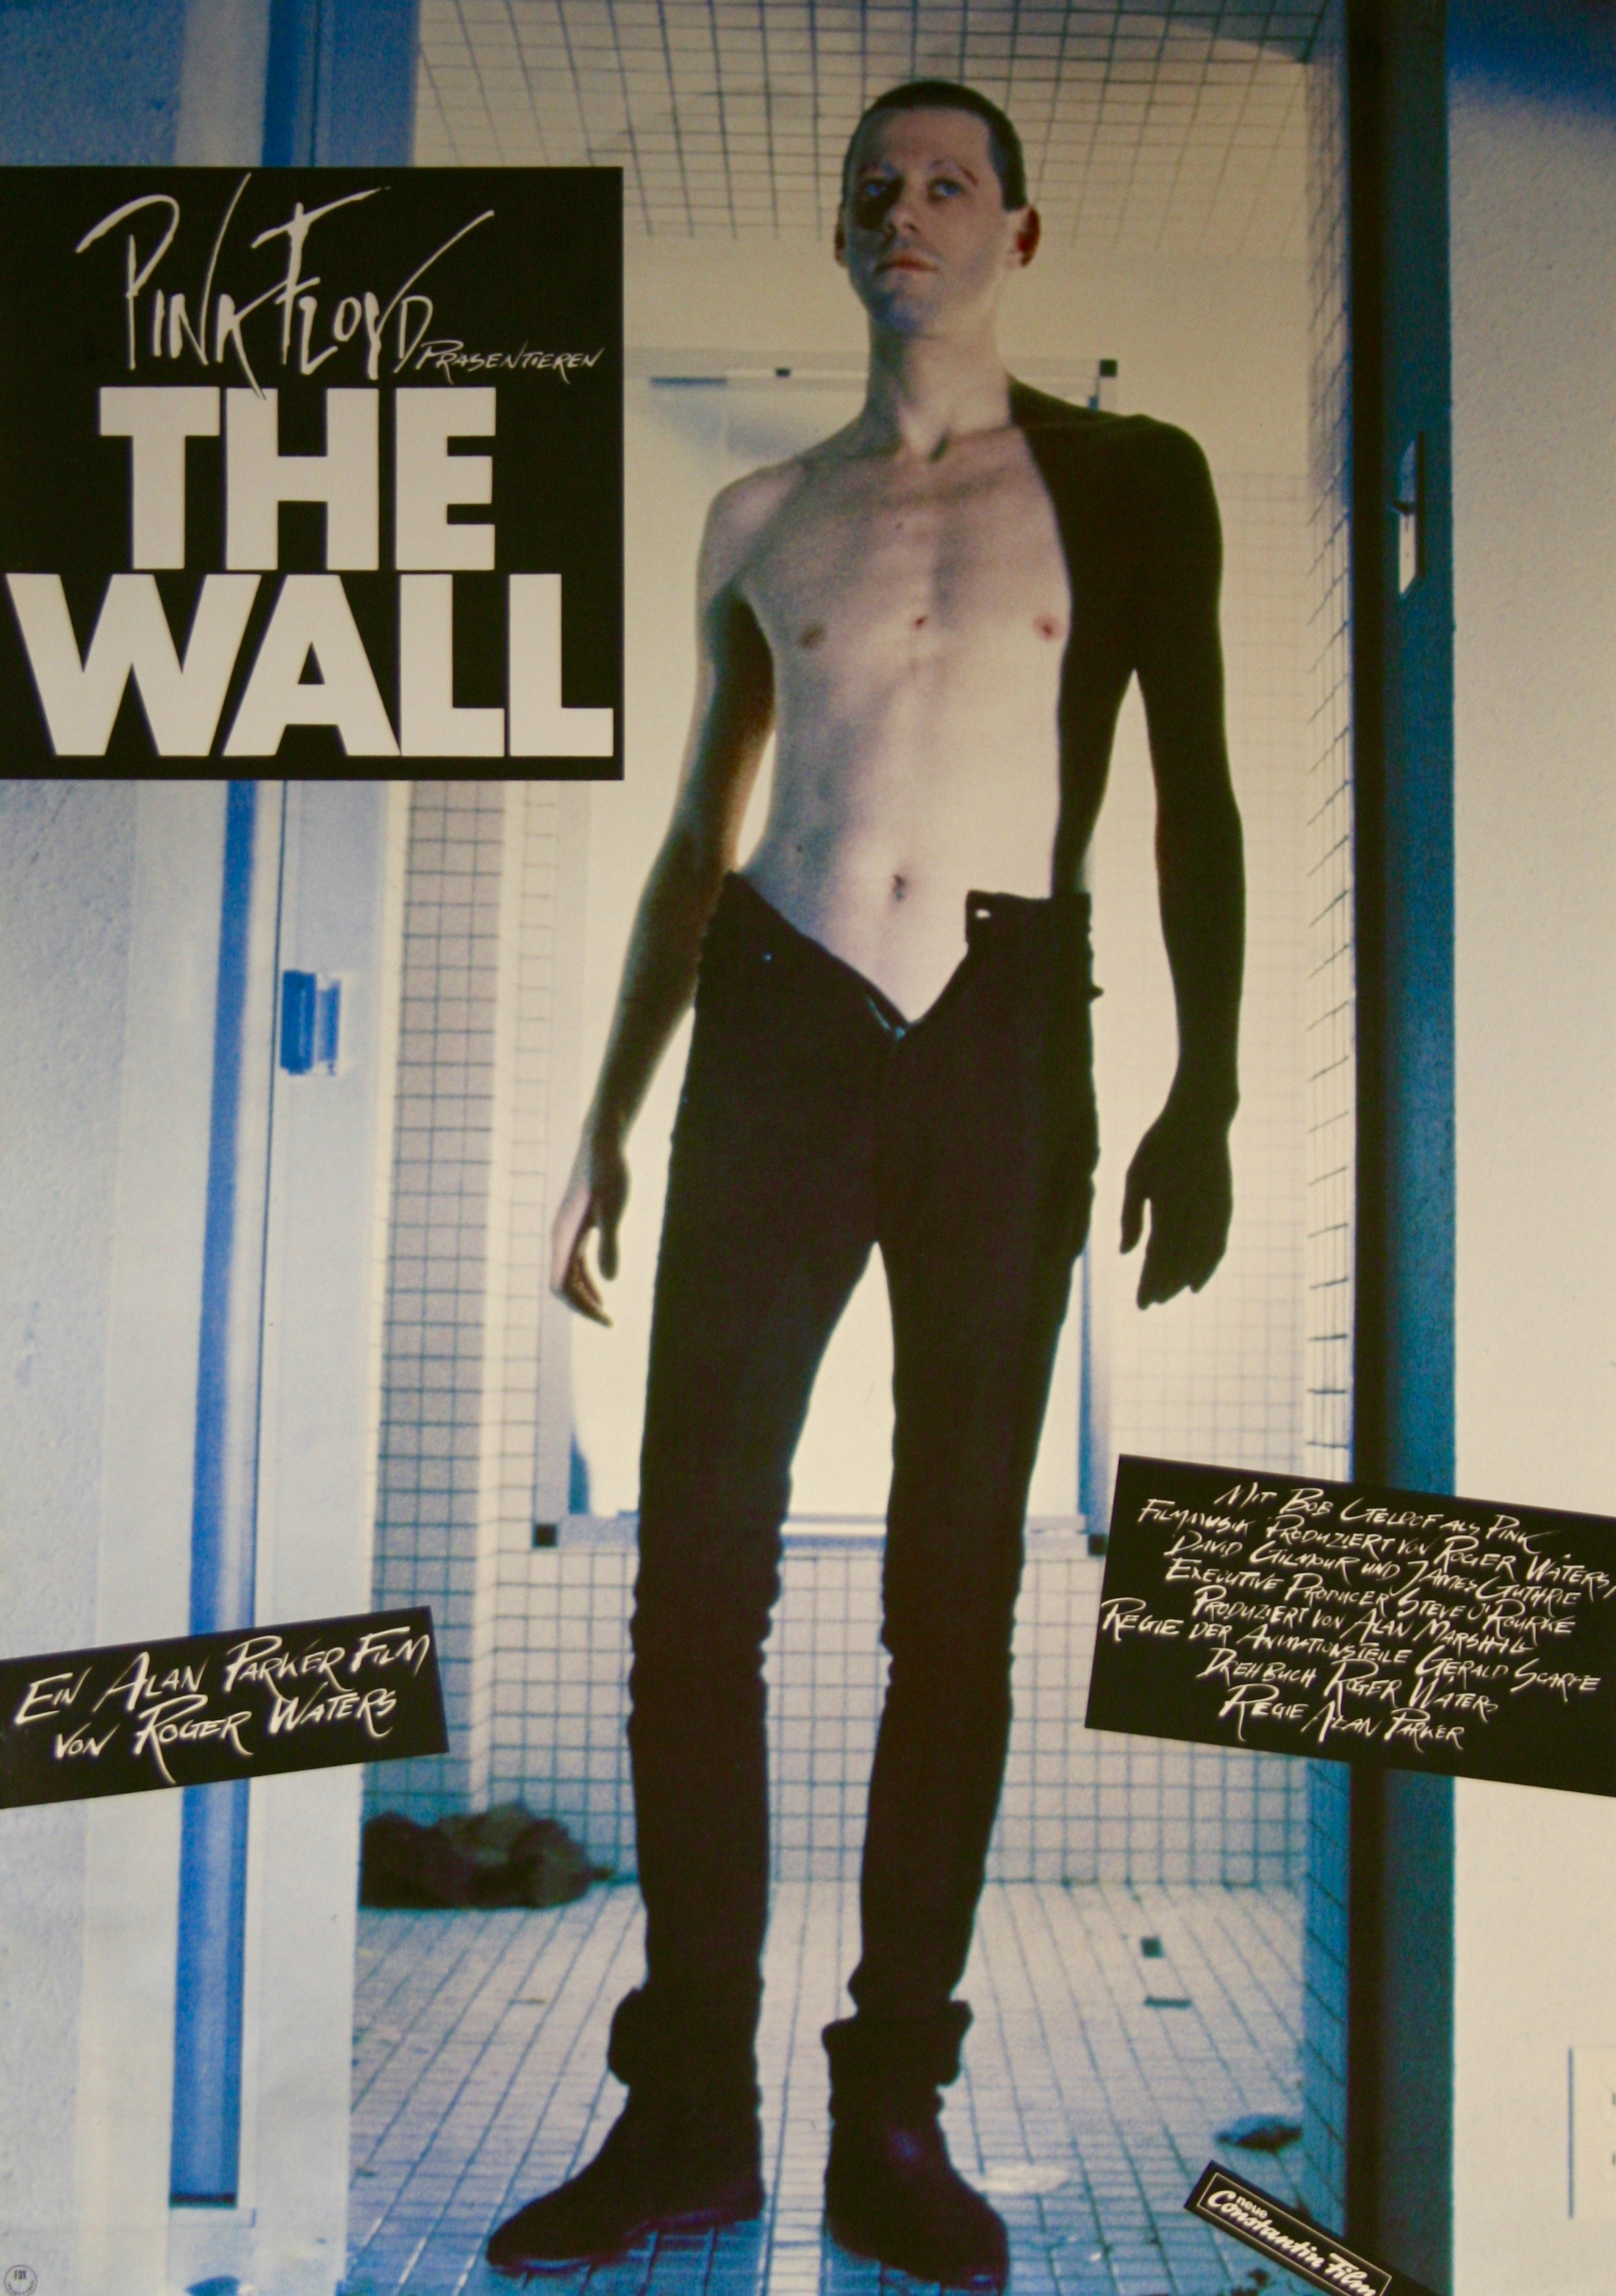 pink floyd the wall movie poster rare vintage film posters